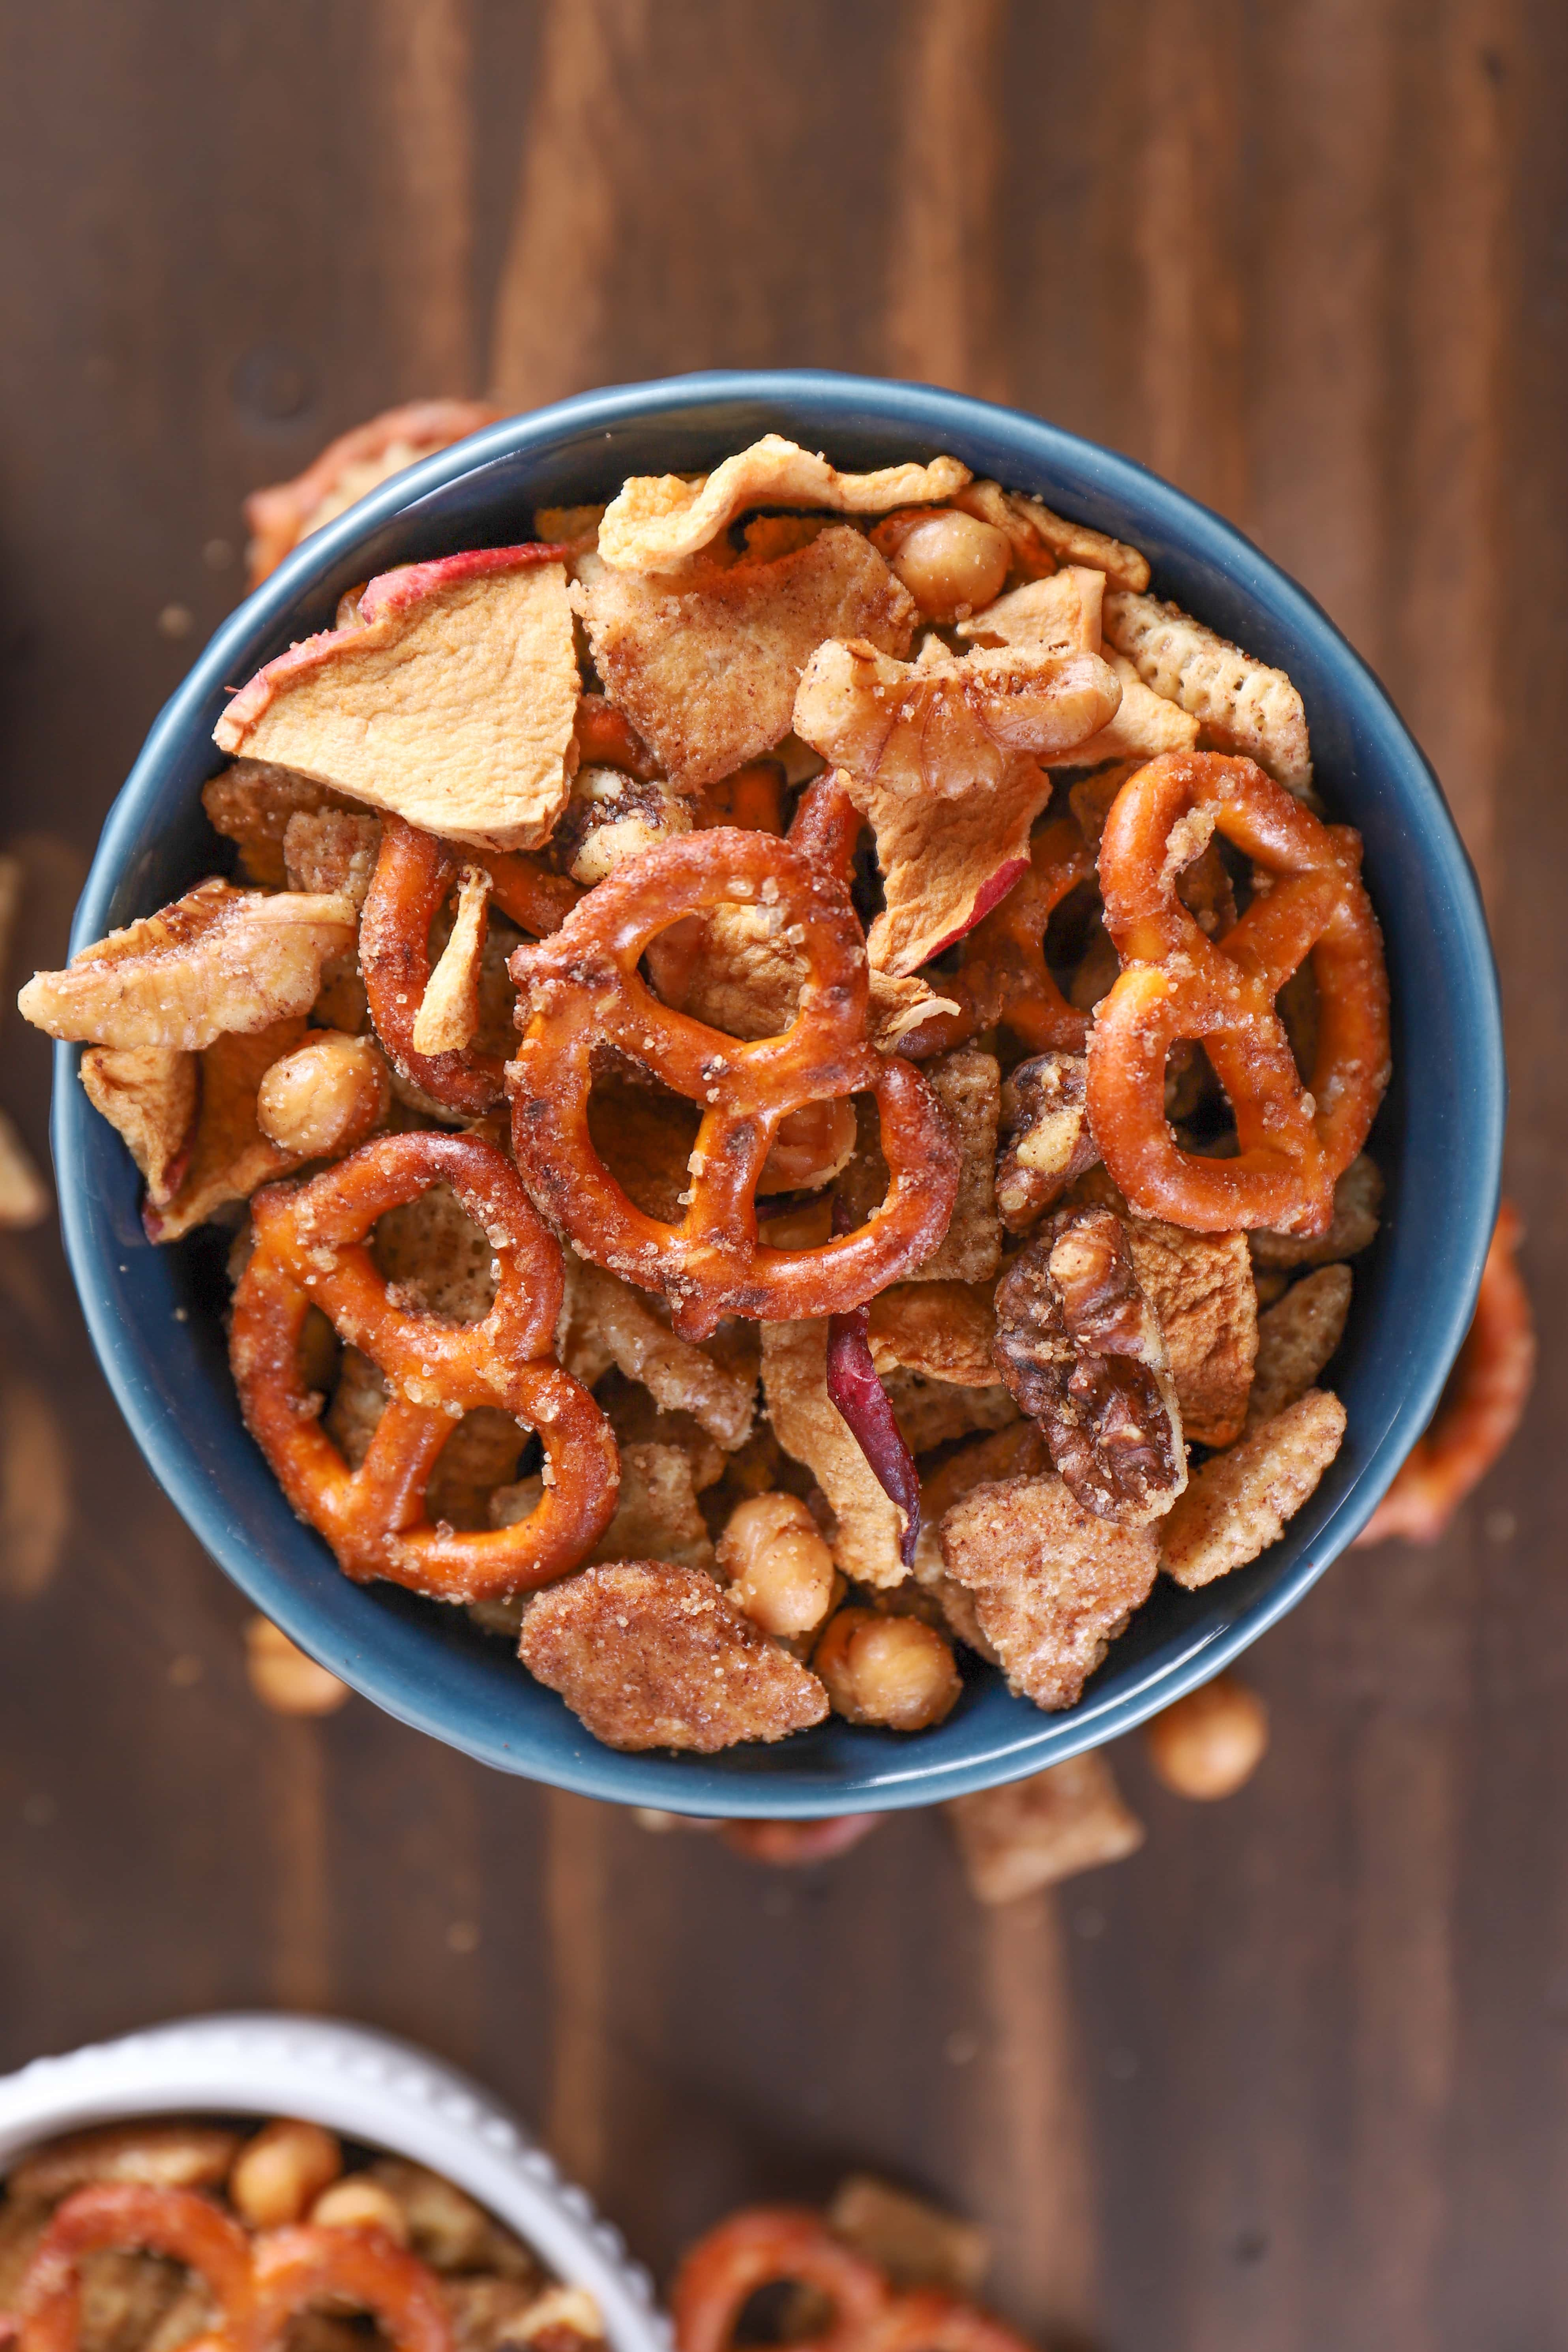 Slow Cooker Caramel Apple Spice Snack Mix Recipe